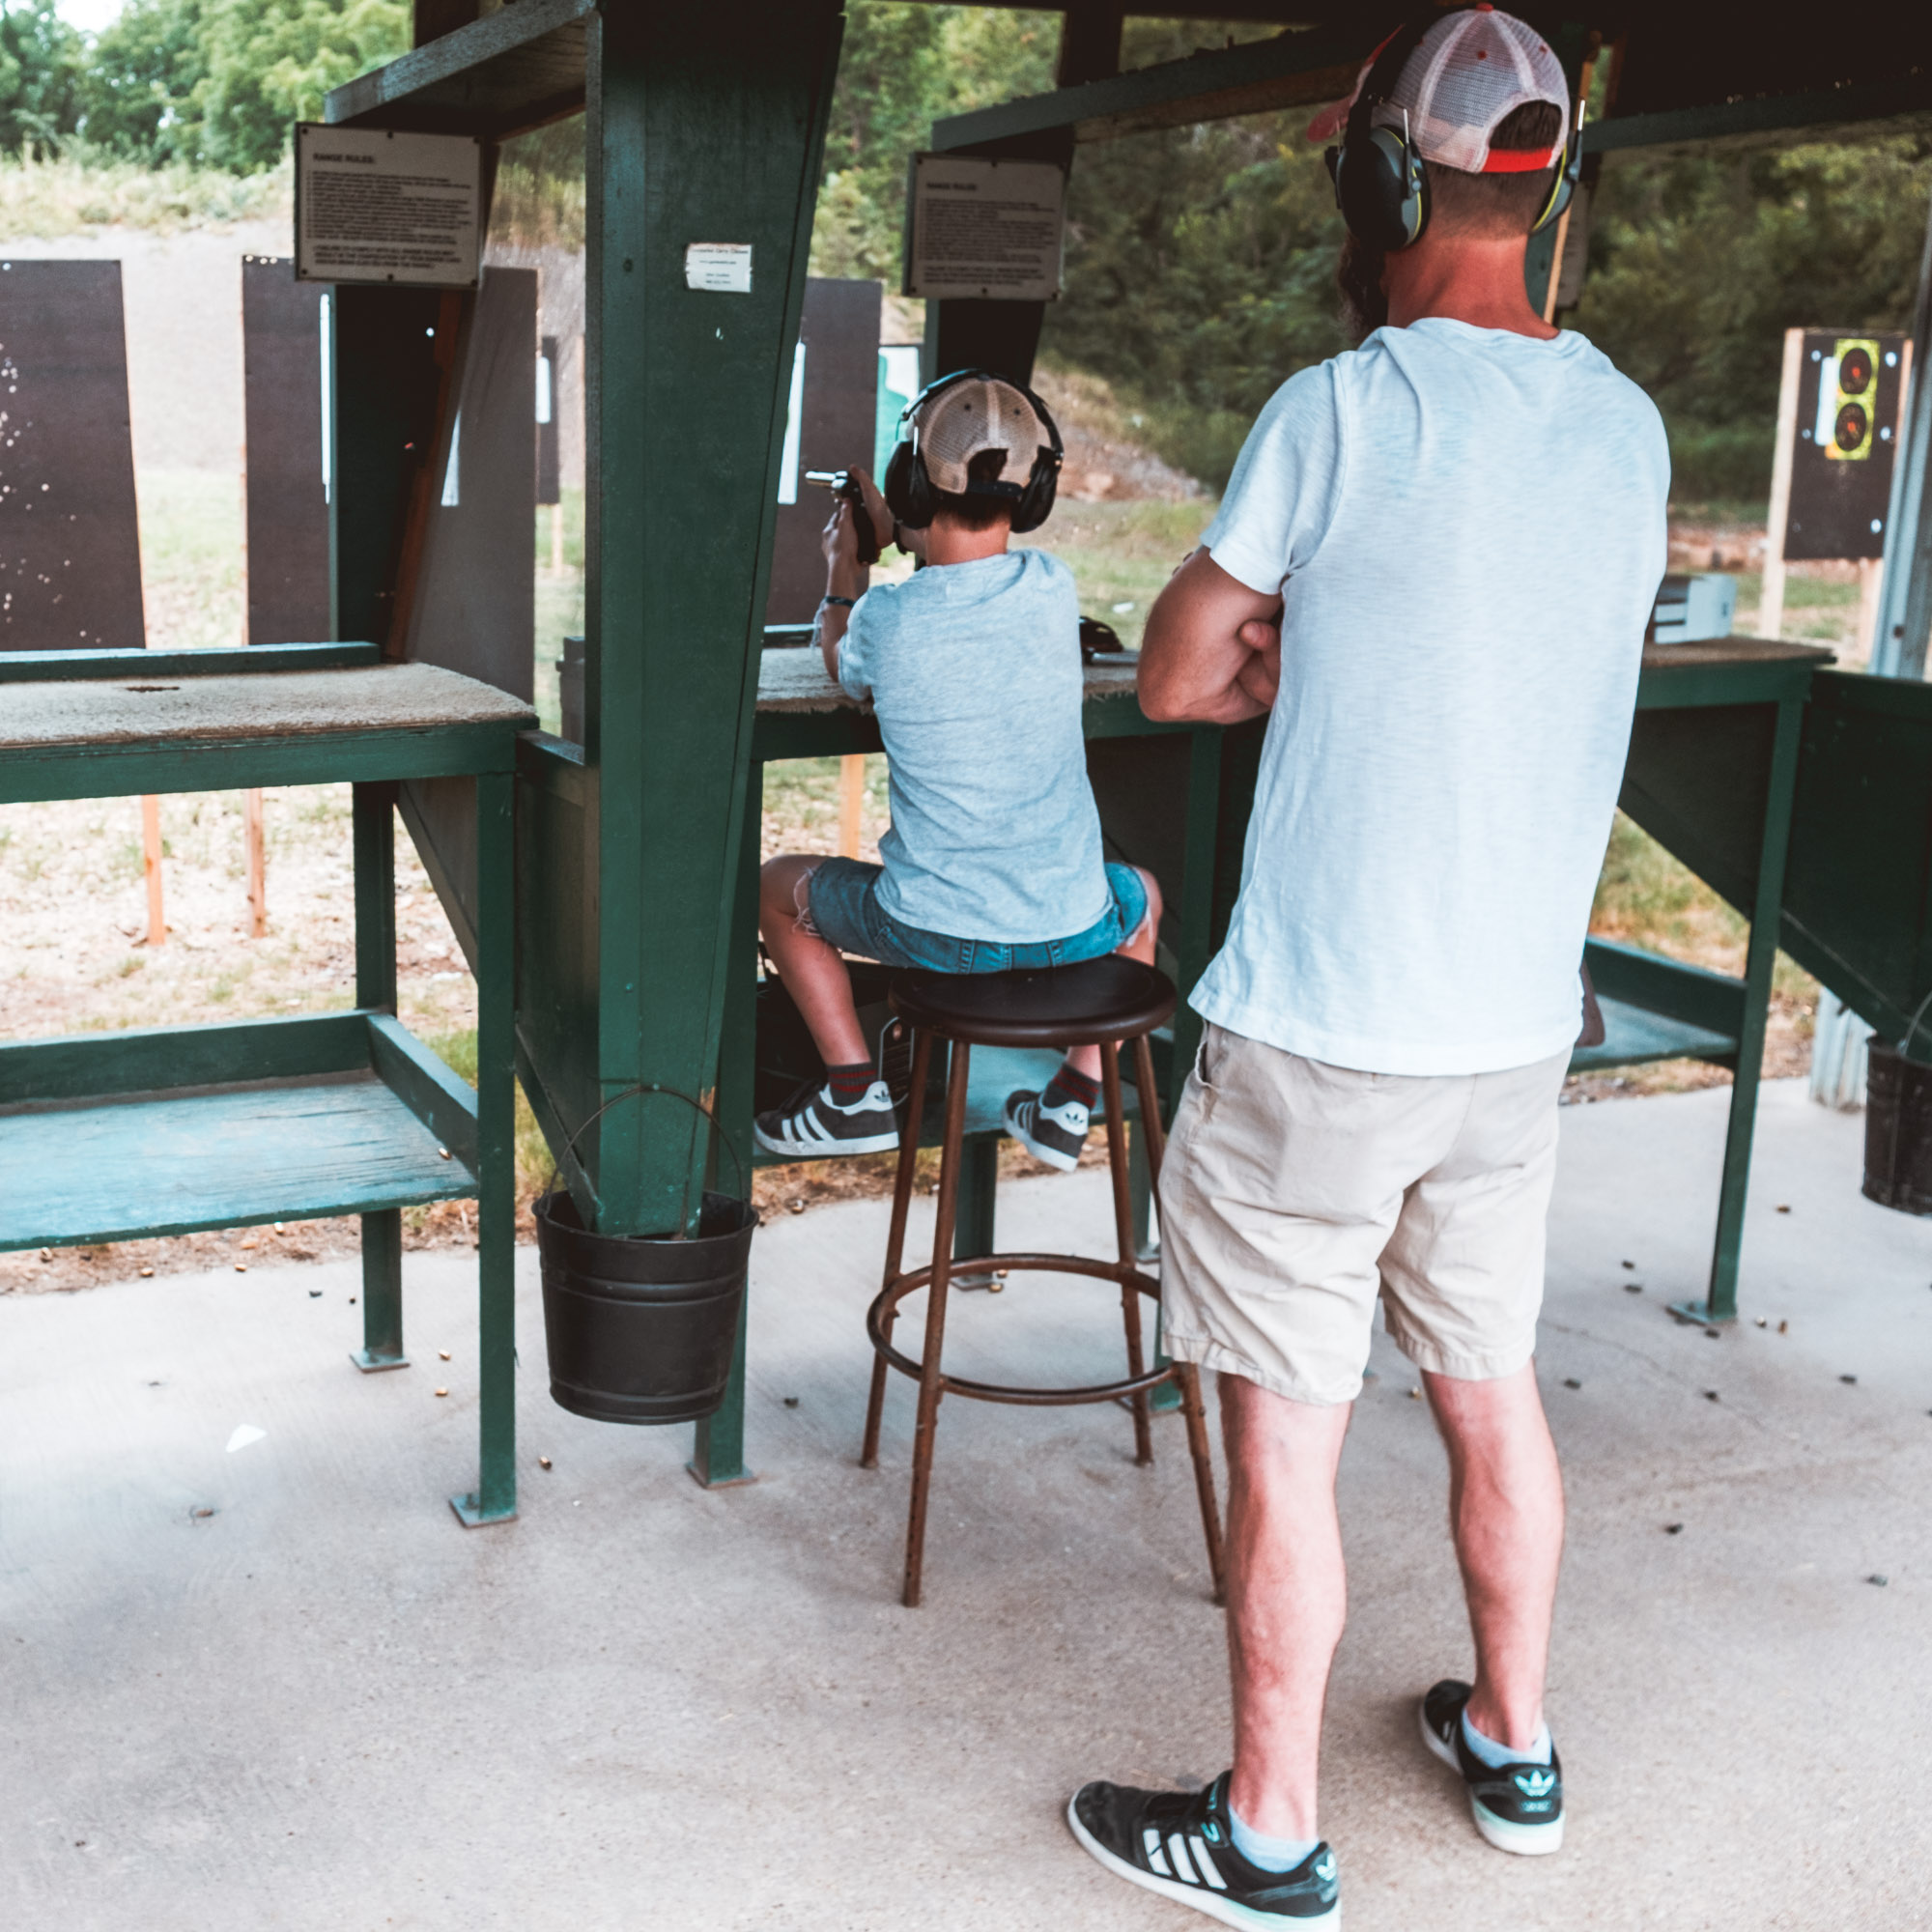 Father and Son at Garland Shooting Range